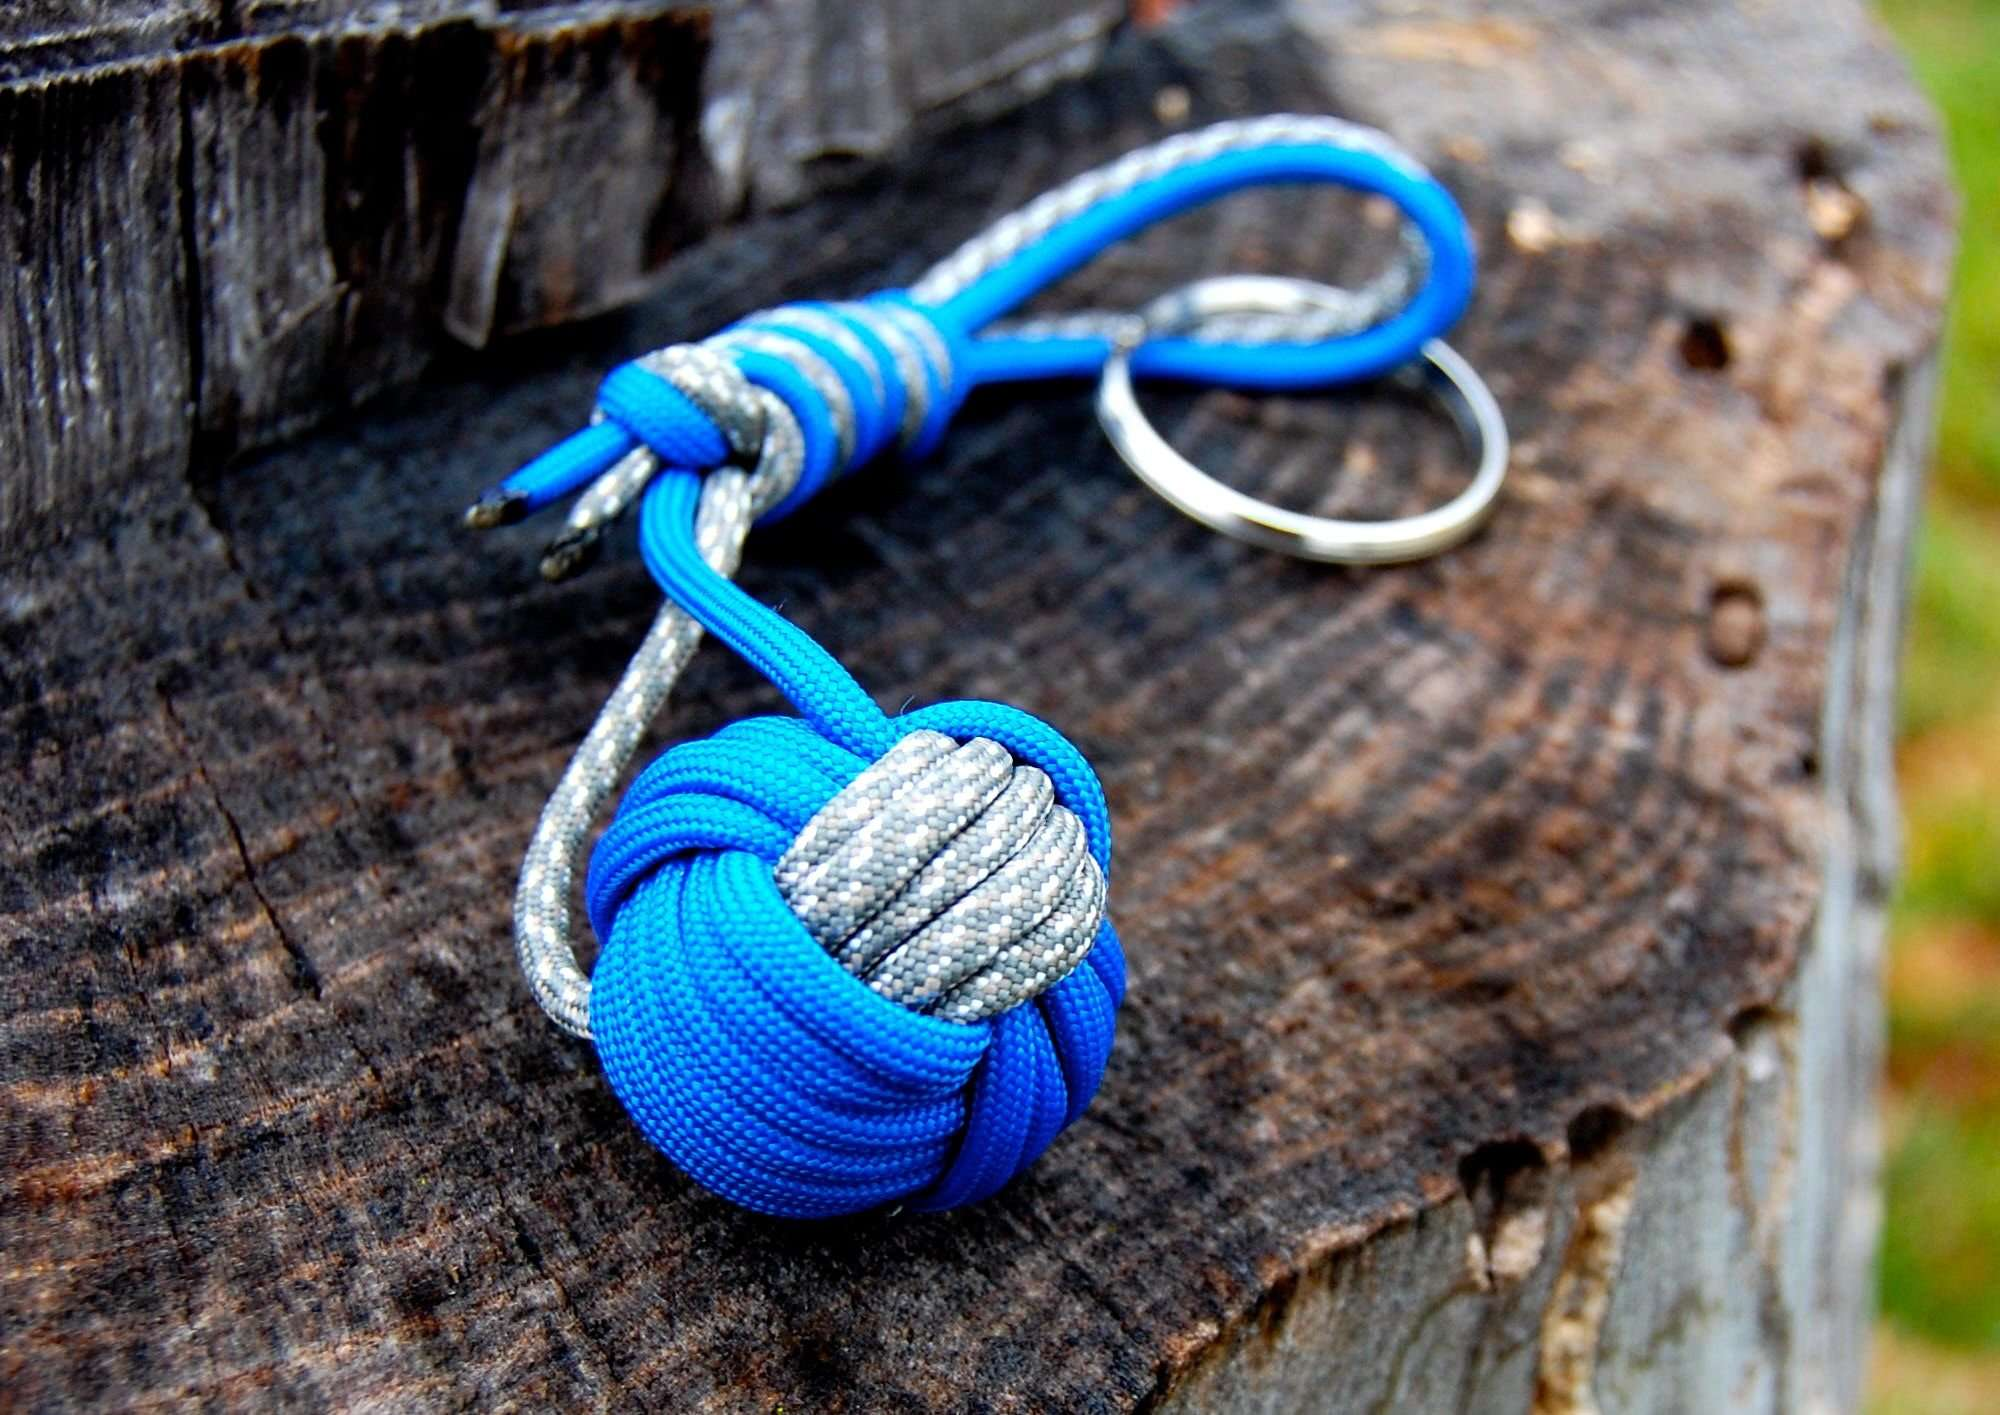 How to make a paracord monkey fist diy projects craft for Paracord stuff to make